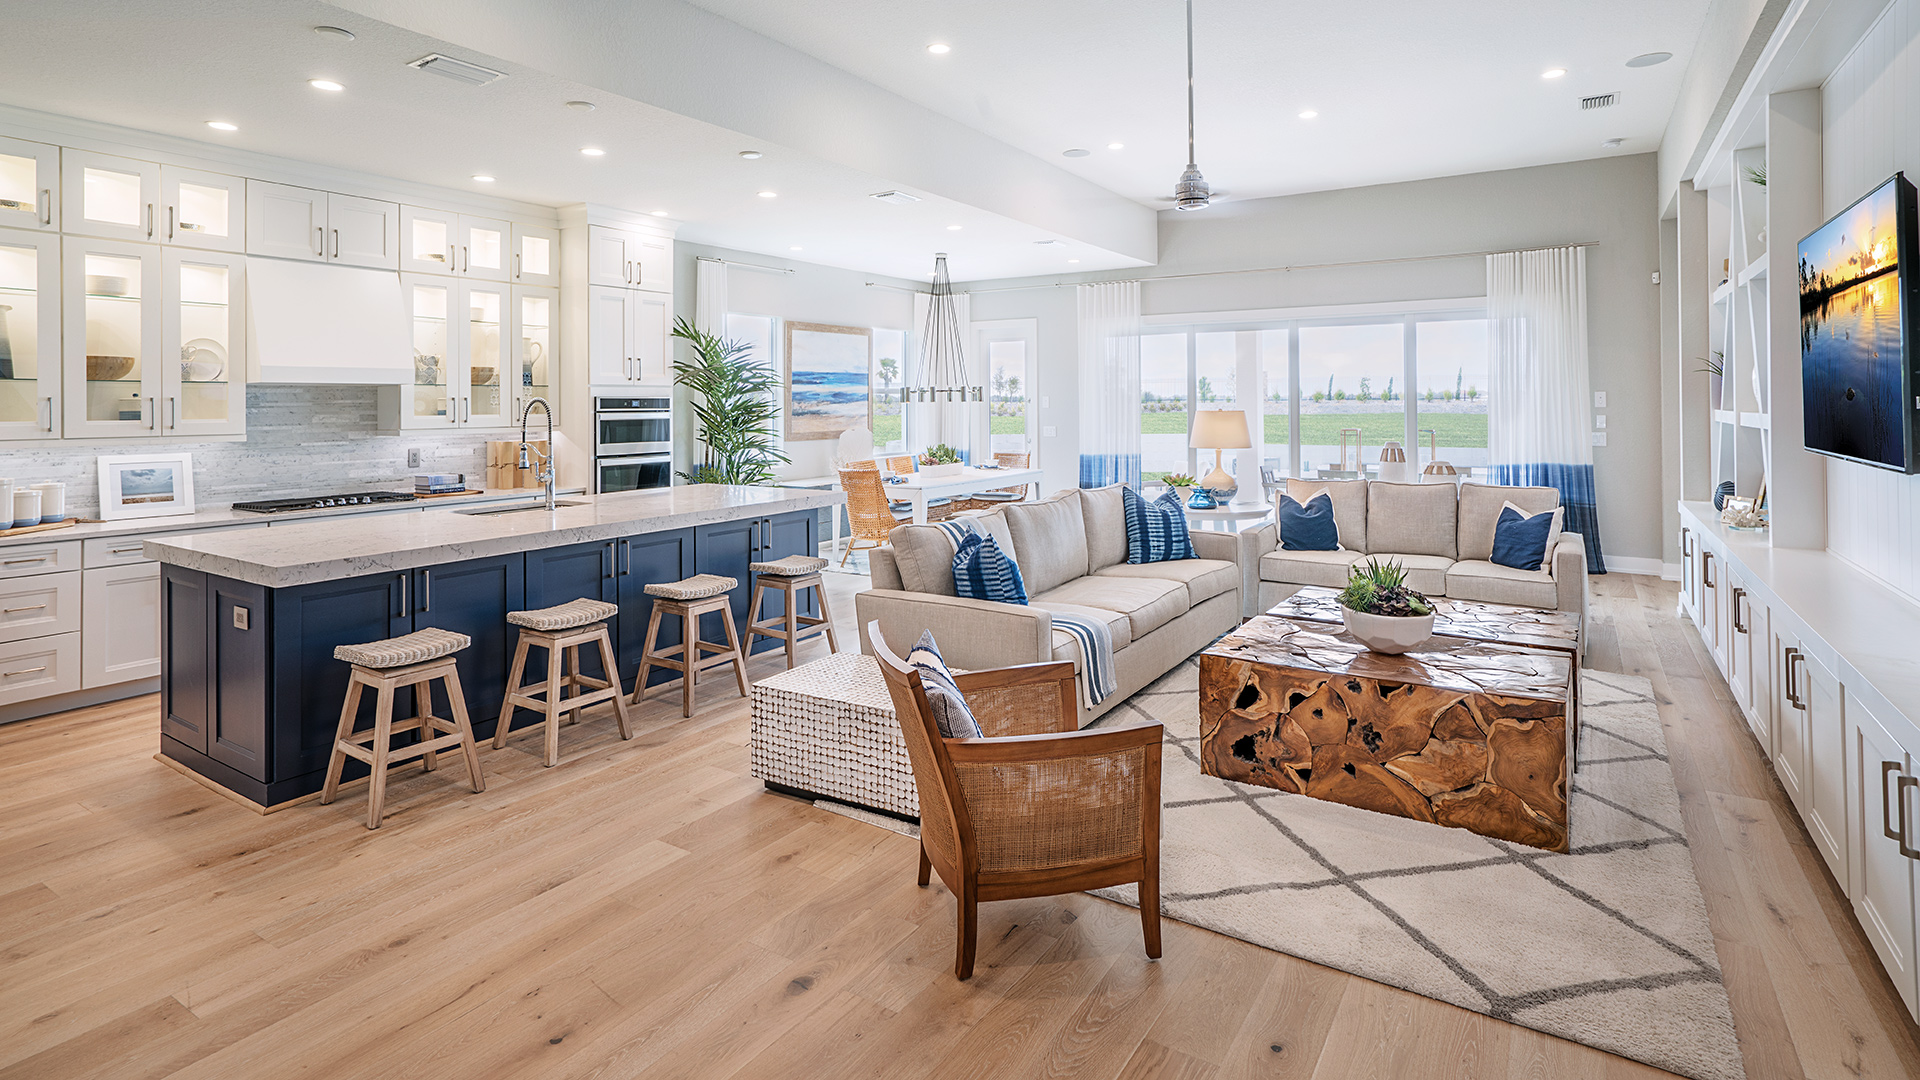 Open floor plans provide spacious living options